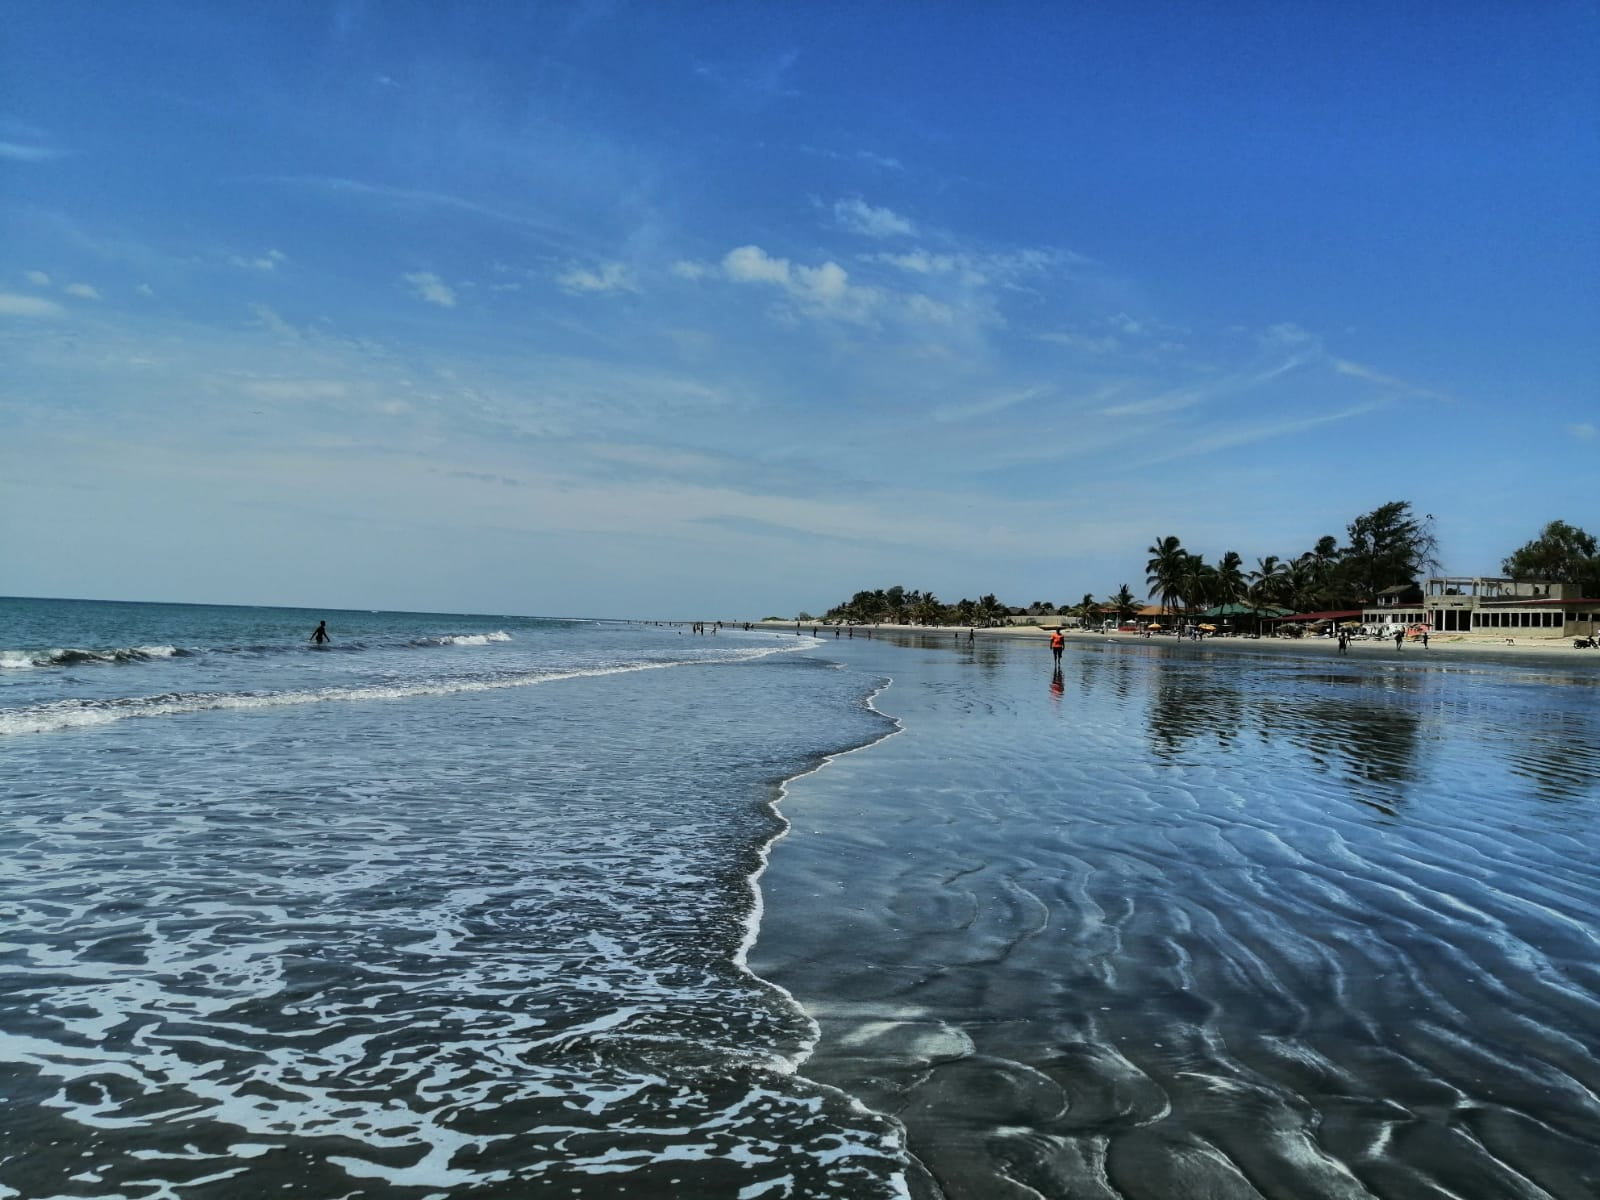 beach - Why the smallest country in Africa could be a great idea in winter 2021/22?